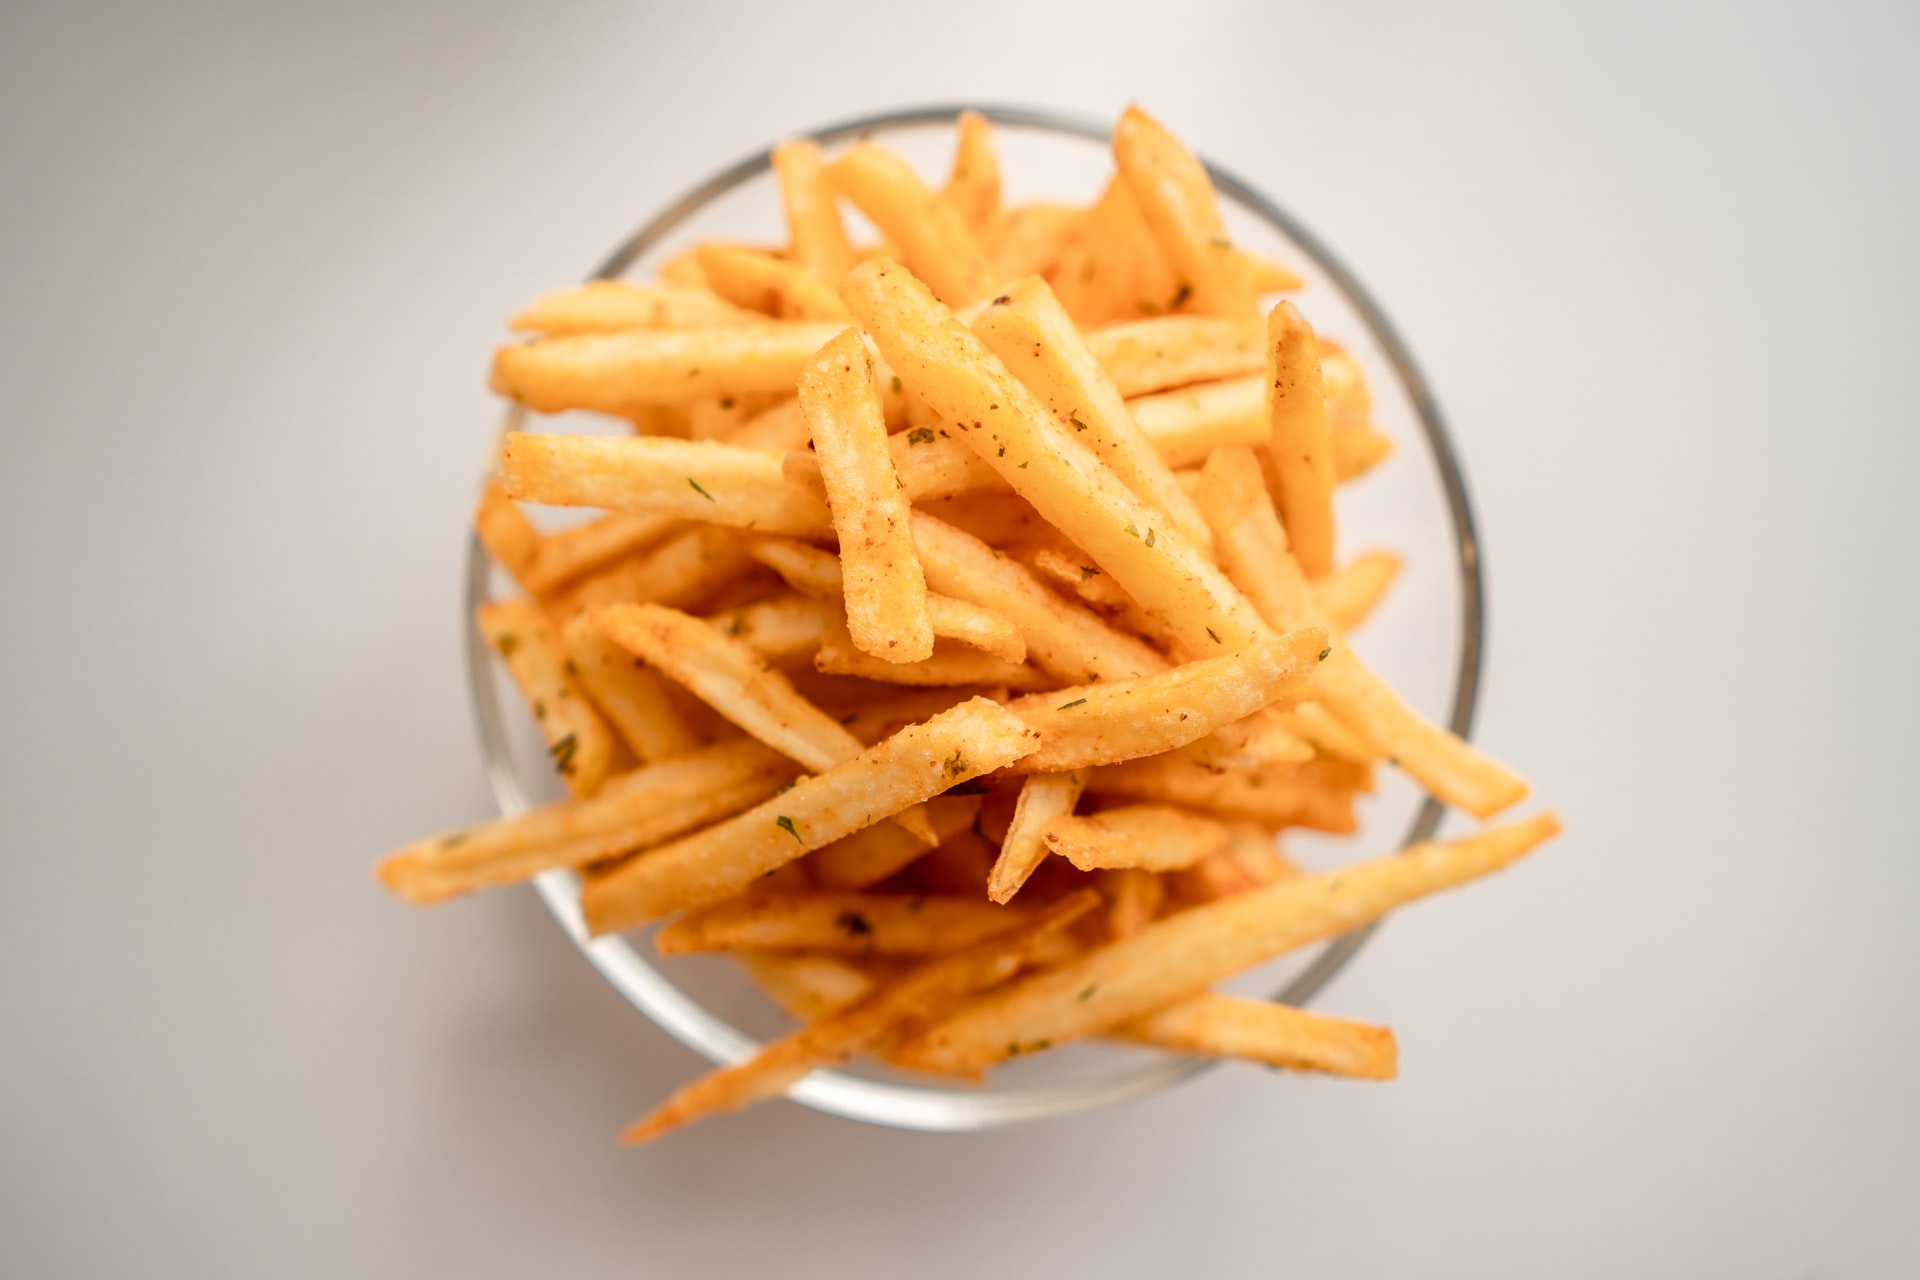 How to Get Free Samples of Fries